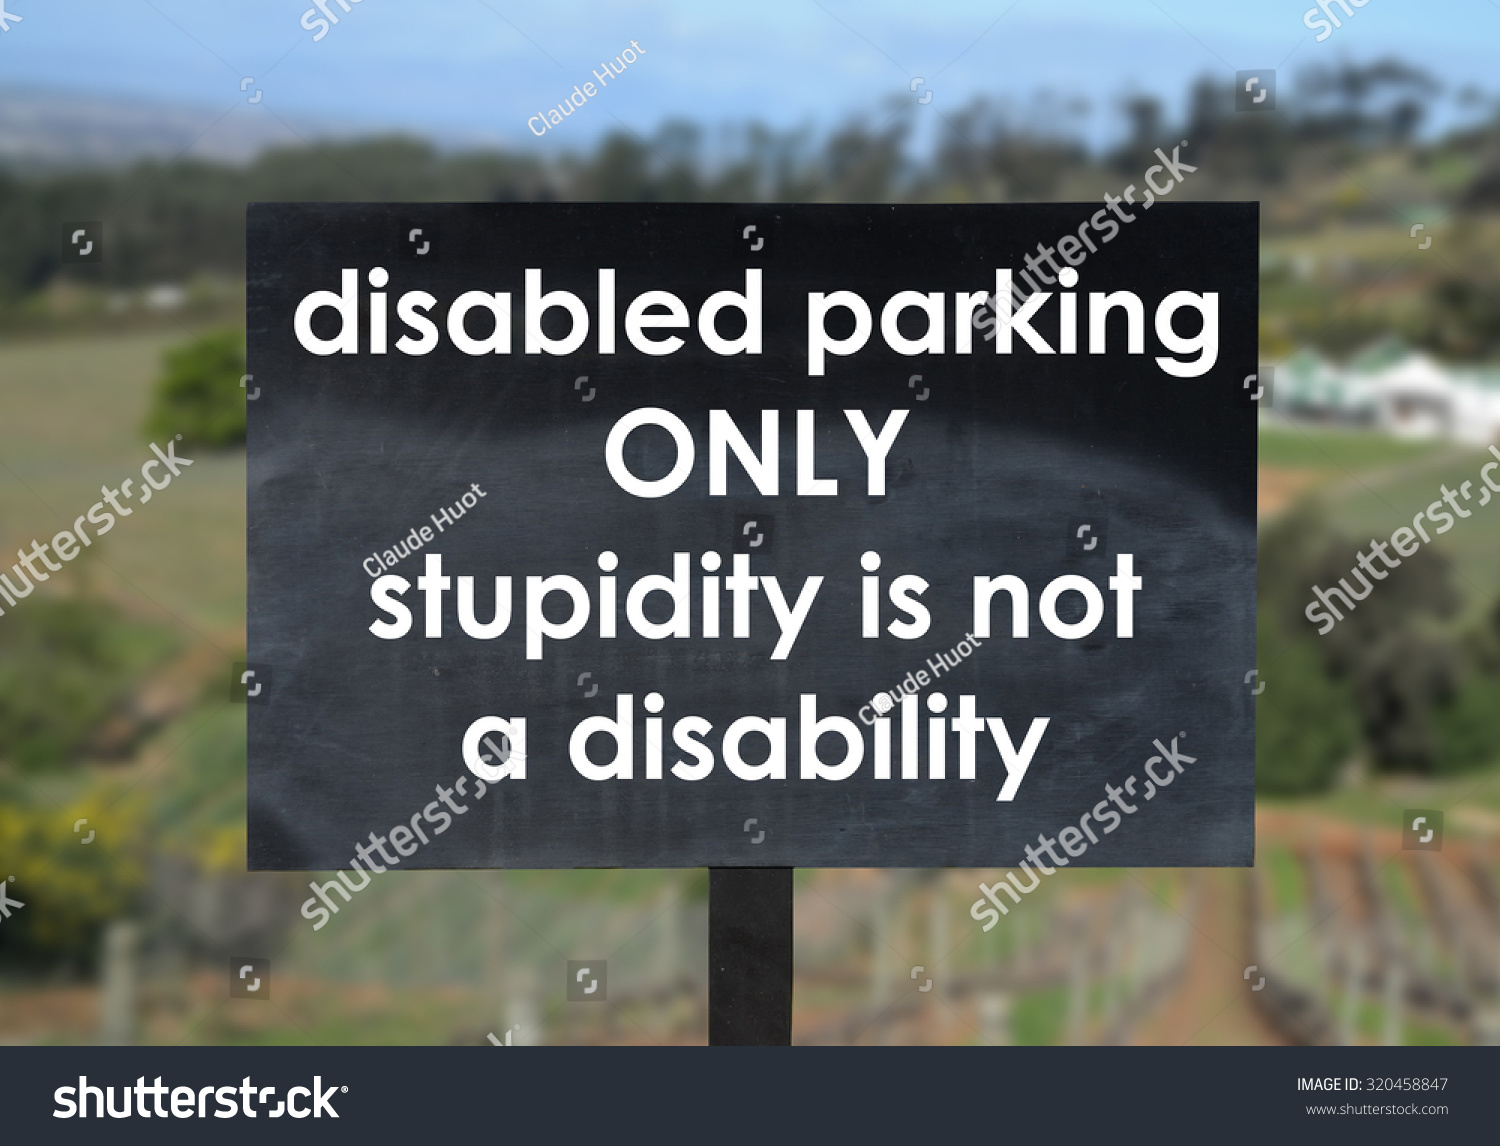 Humorous sign in a parking lot of a winery in South Africa